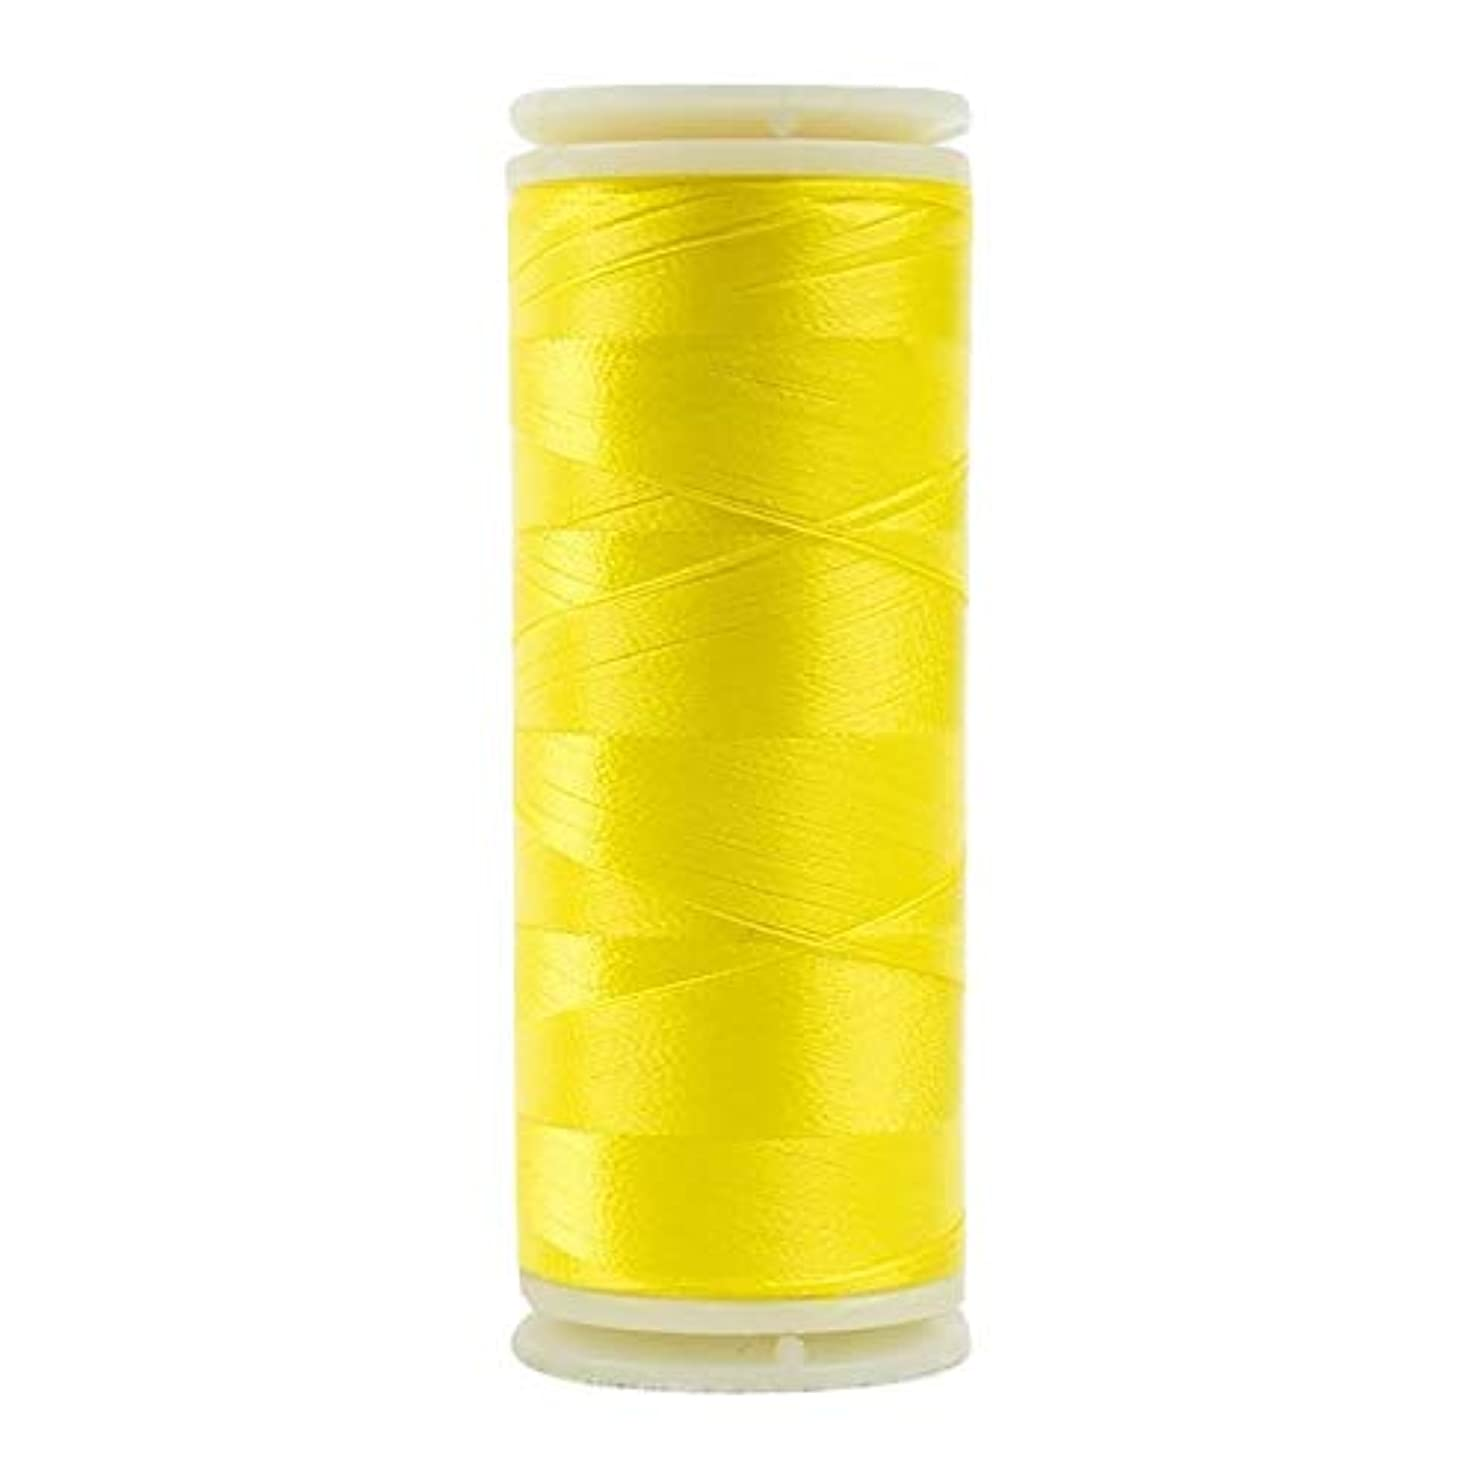 WonderFil, Specialty Threads, InvisaFil, 2-Ply Cottonized Soft Polyester, Silk-Like Thread for Fine Sewing, 100wt - Daffodil Yellow, 400m